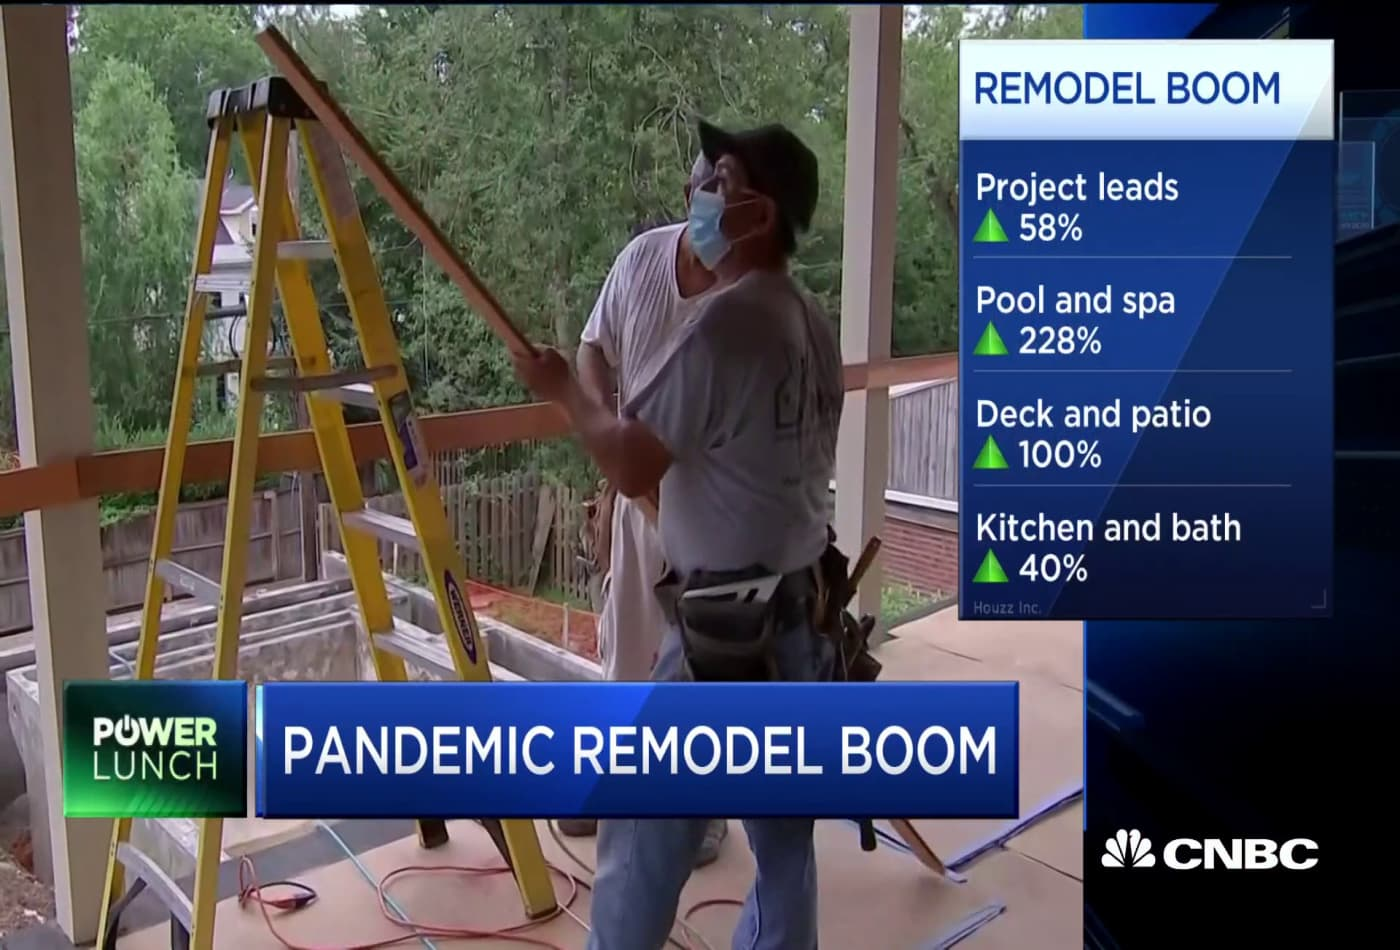 Pandemic remodeling boom—Here are the numbers